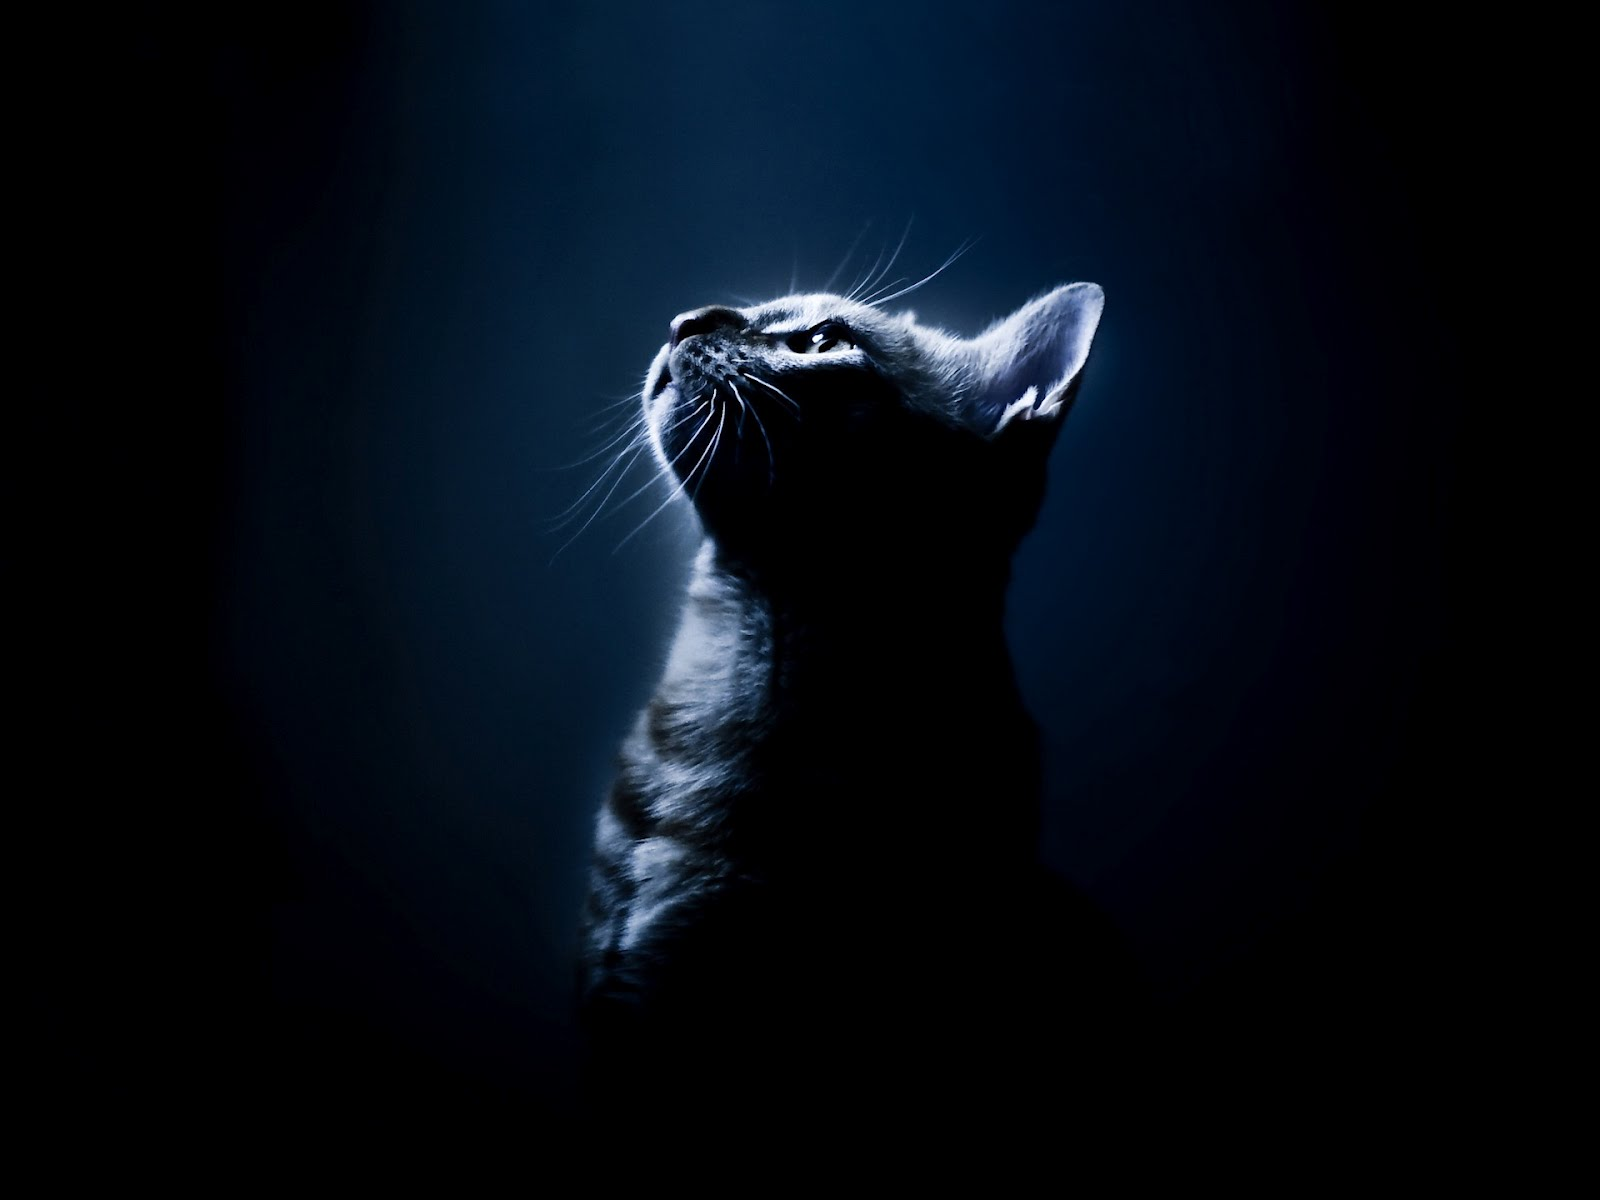 Black Cat Hd Posted By John Tremblay